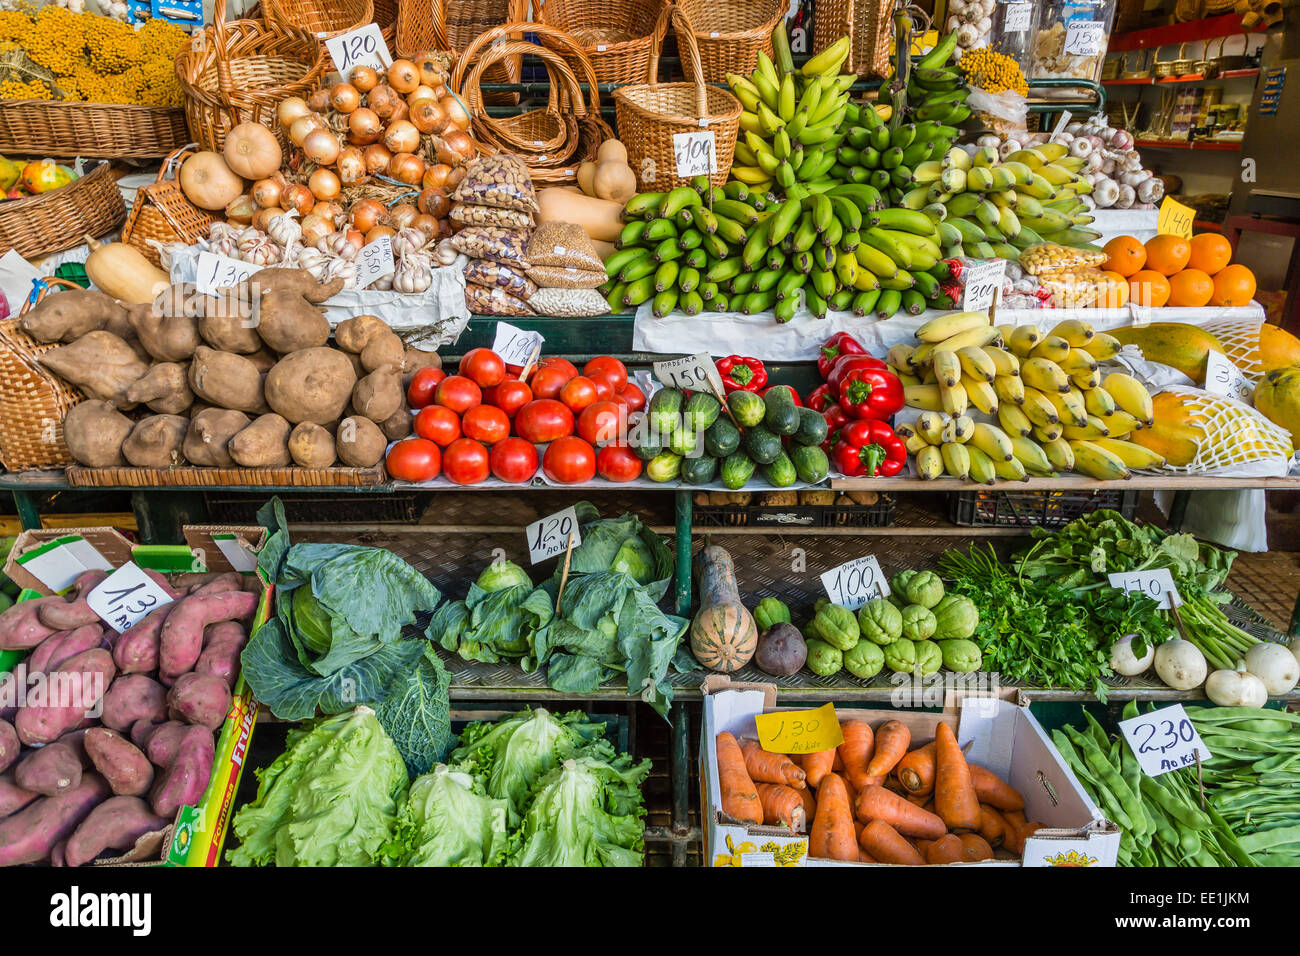 Vendors inside the Funchal Market, where fresh produce and fish are sold in the capital city of Funchal, Madeira, - Stock Image